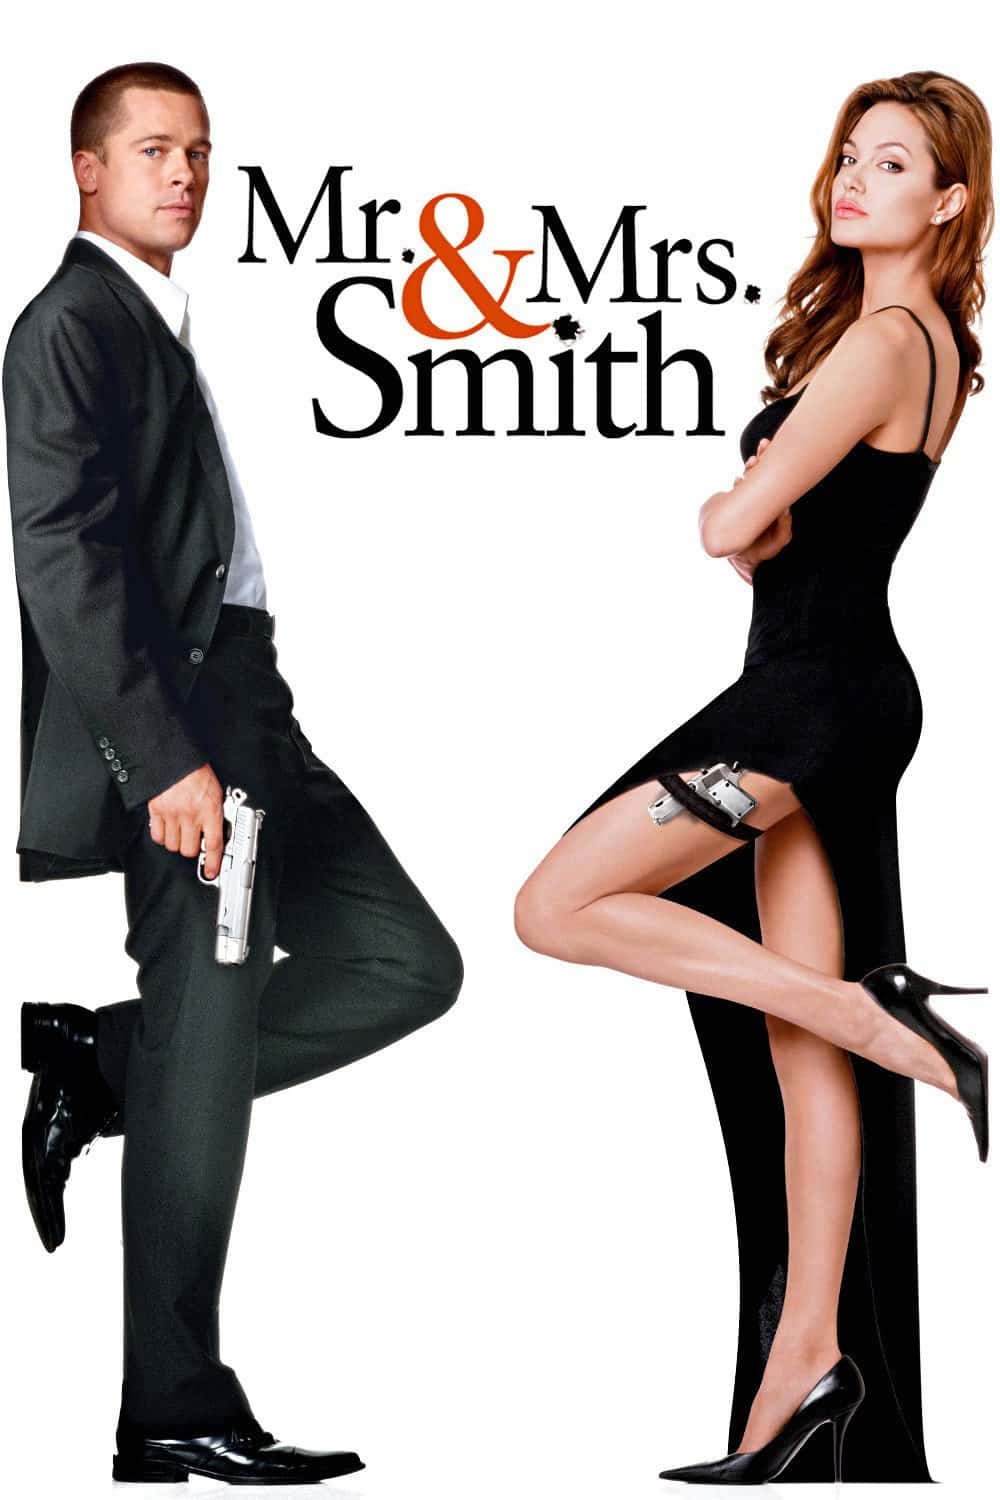 Mr. and Mrs. Smith, 2005